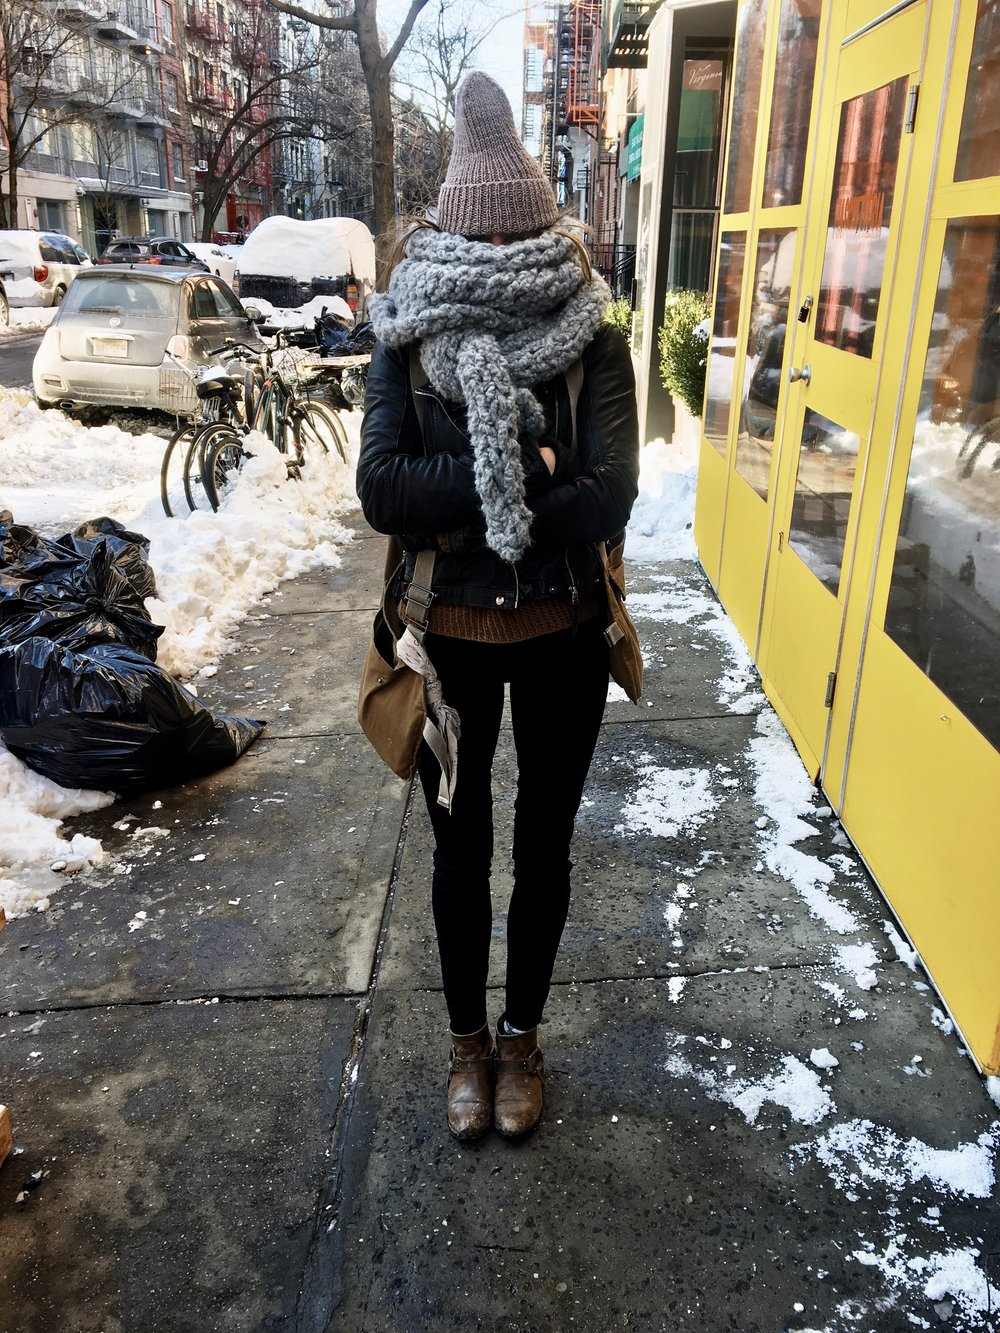 Bundled up on the streets of the East Village, sporting my new  Mariner's Cap  and upcoming Tundra Scarf.